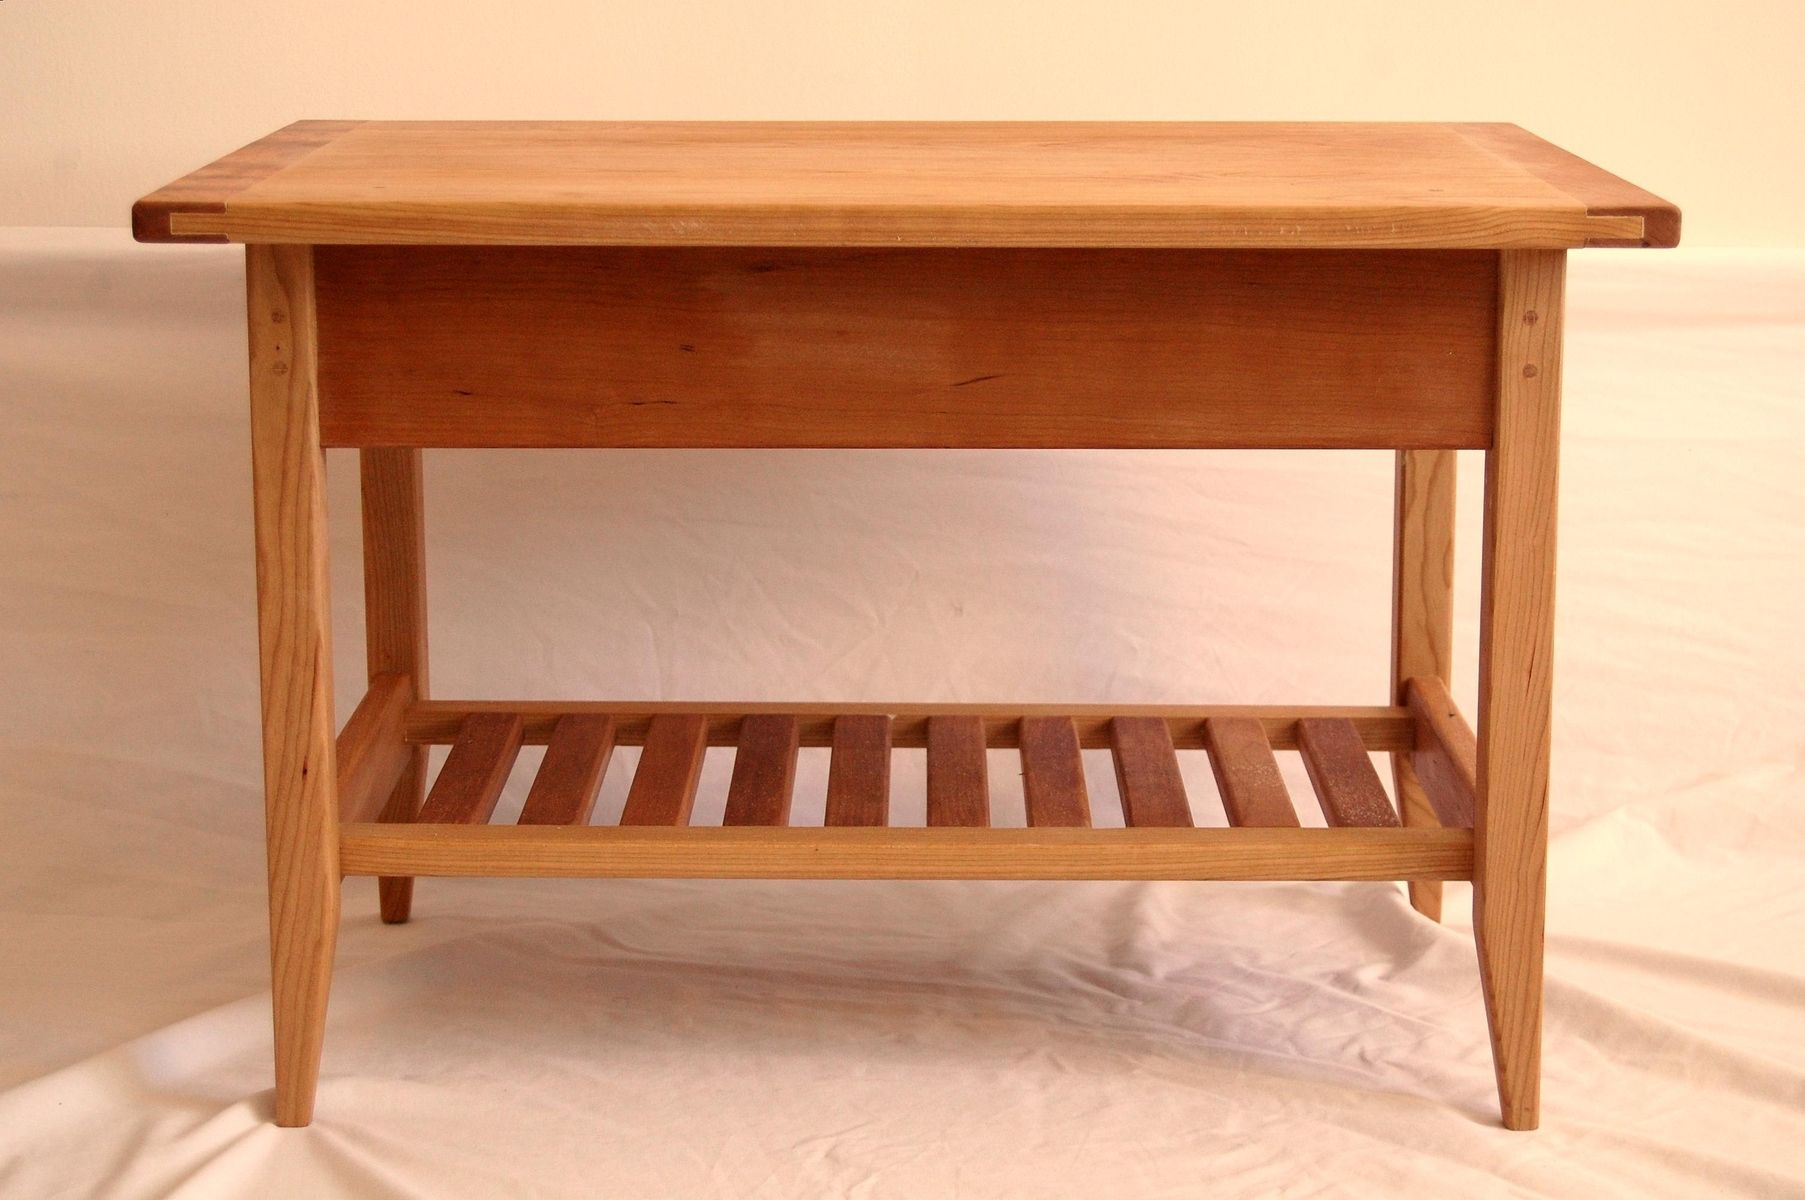 Buy A Custom Cherry Shaker Style Coffee Table With Drawer And Shelf